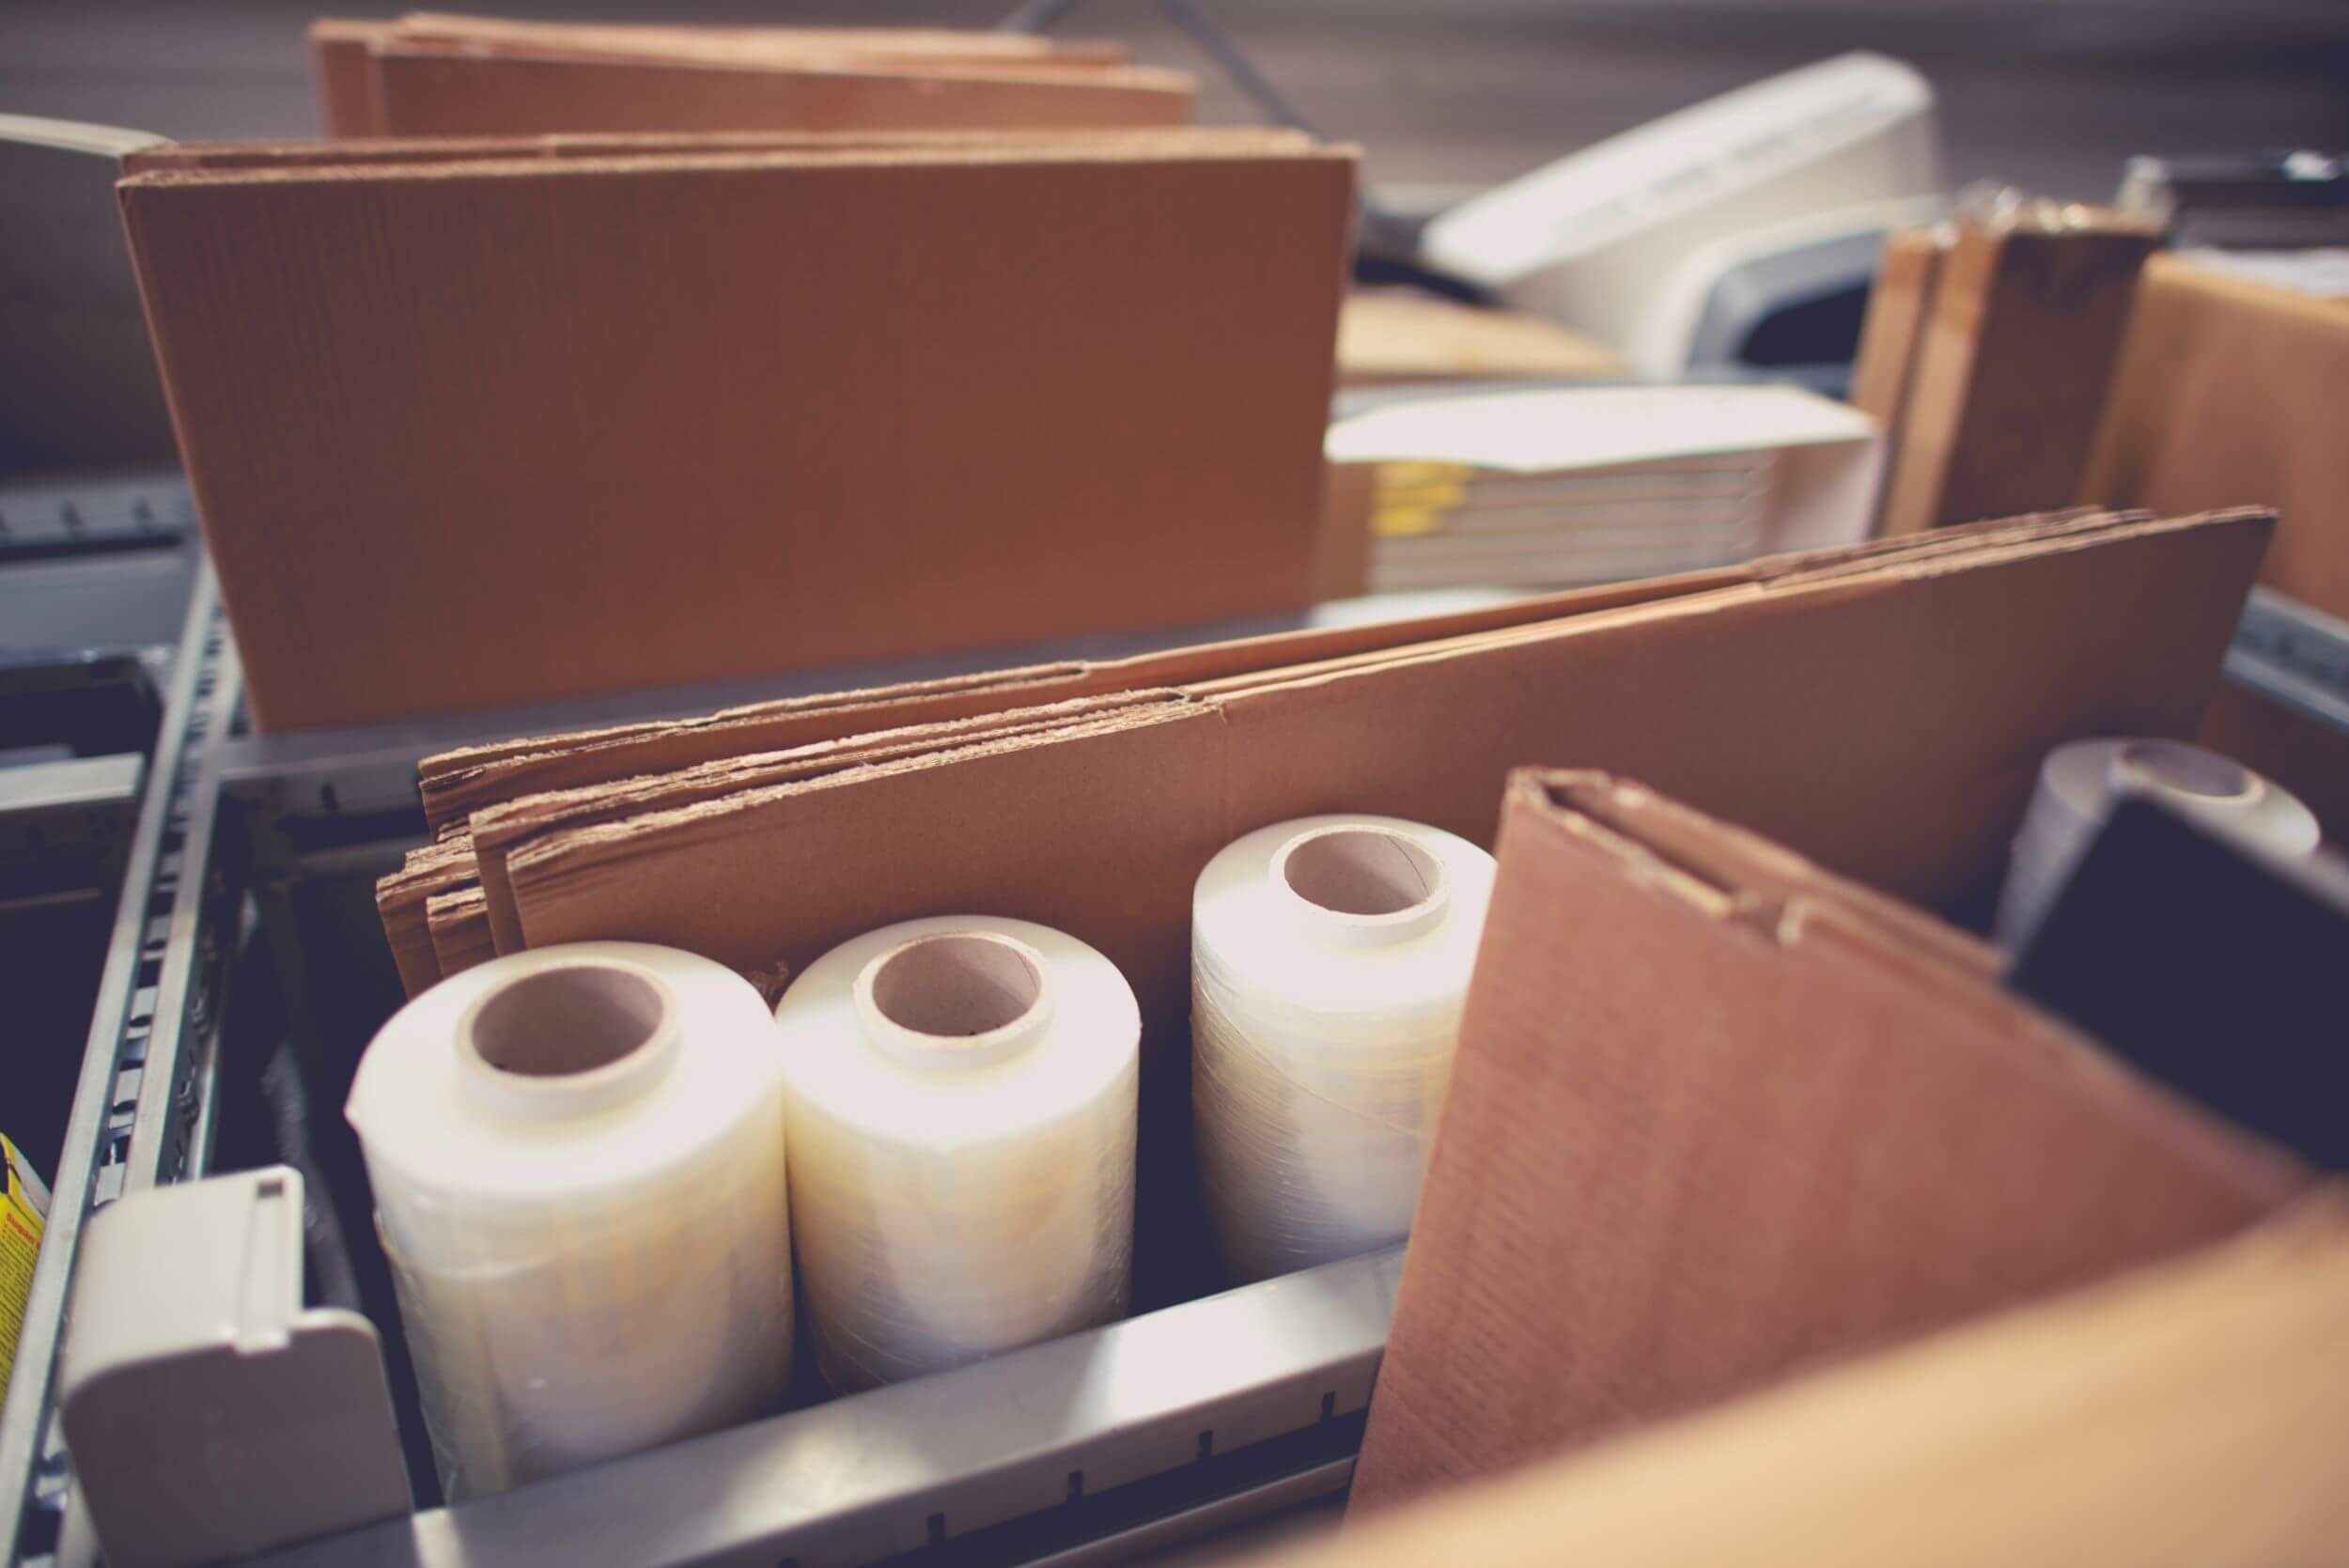 ShopRigidBoxes 5 Packaging Materials to Consider for Your Next Project